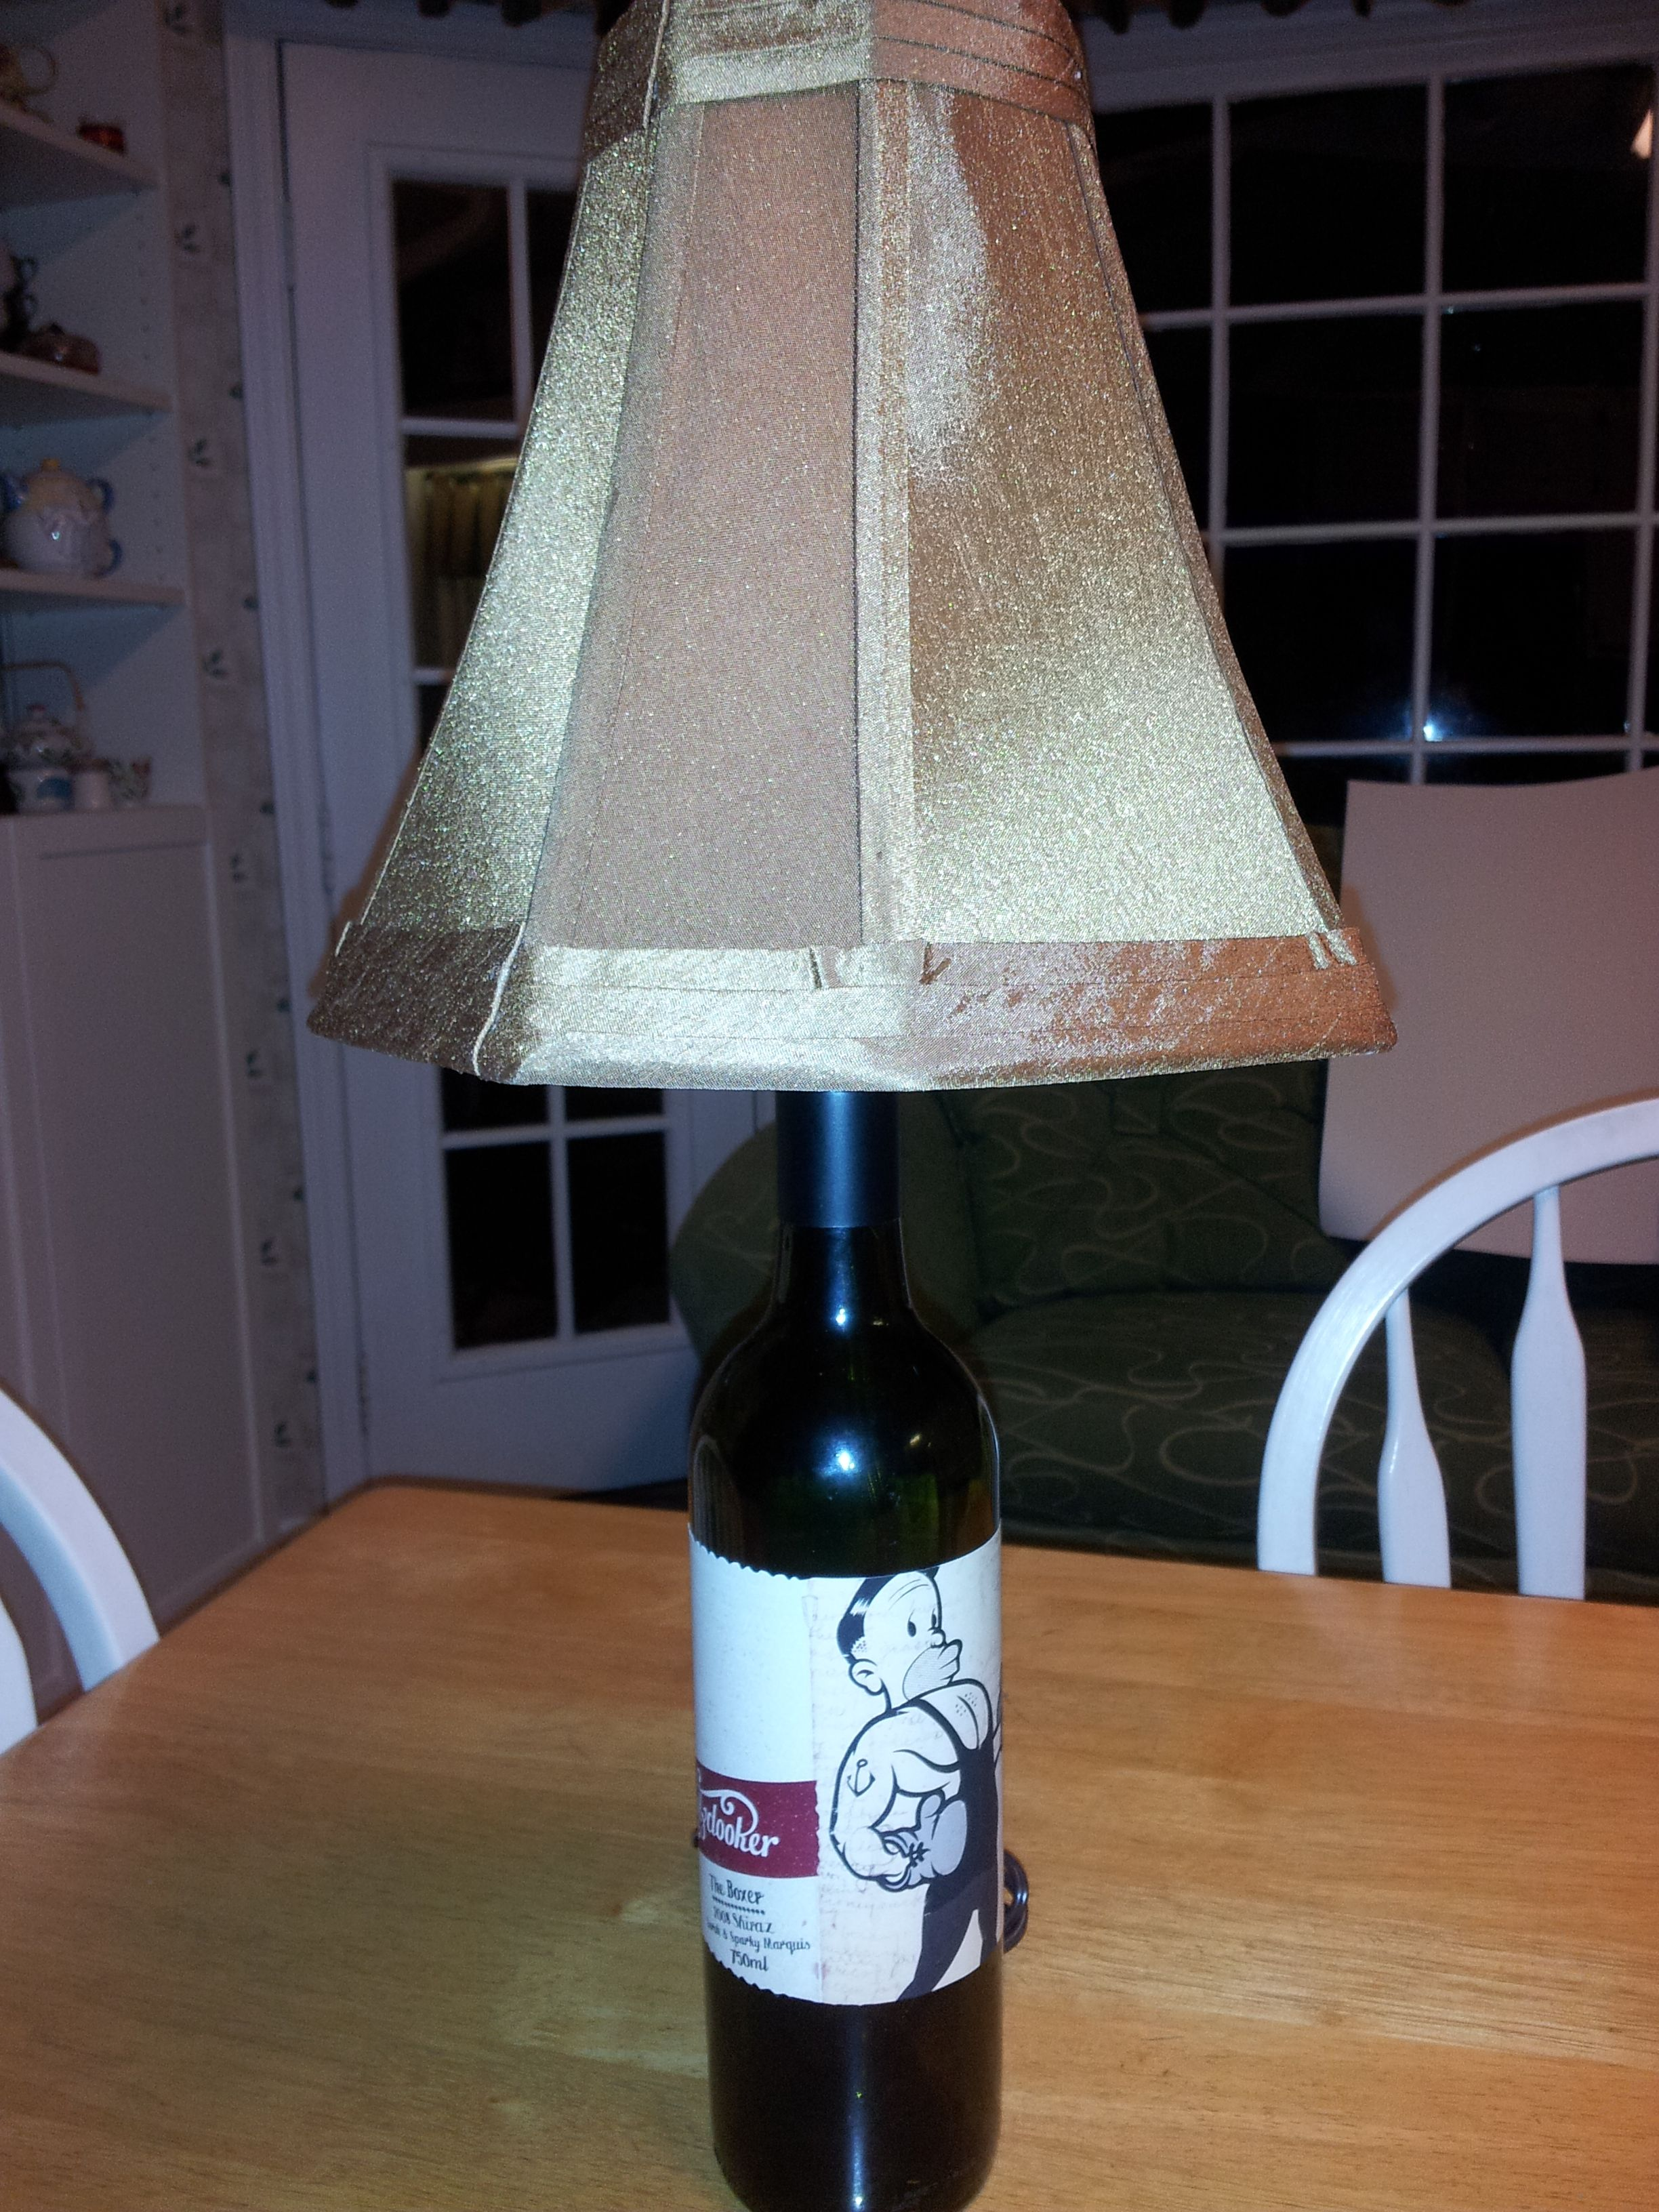 Made this lamp out of a cute wine bottle crafts for Lamps made out of wine bottles